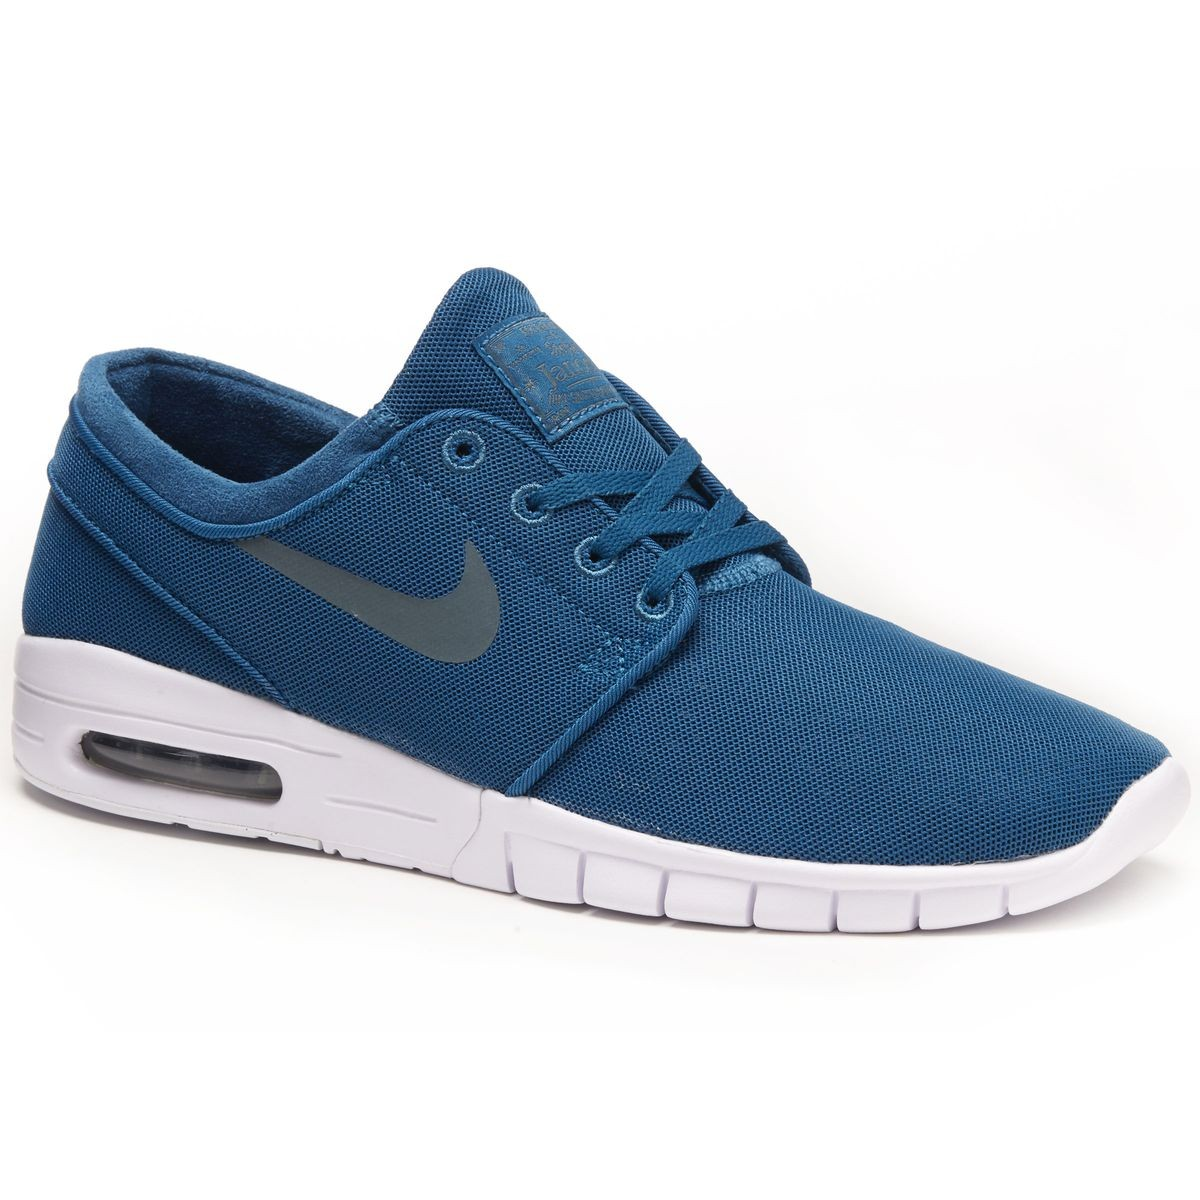 nike stefan janoski max shoes. Black Bedroom Furniture Sets. Home Design Ideas